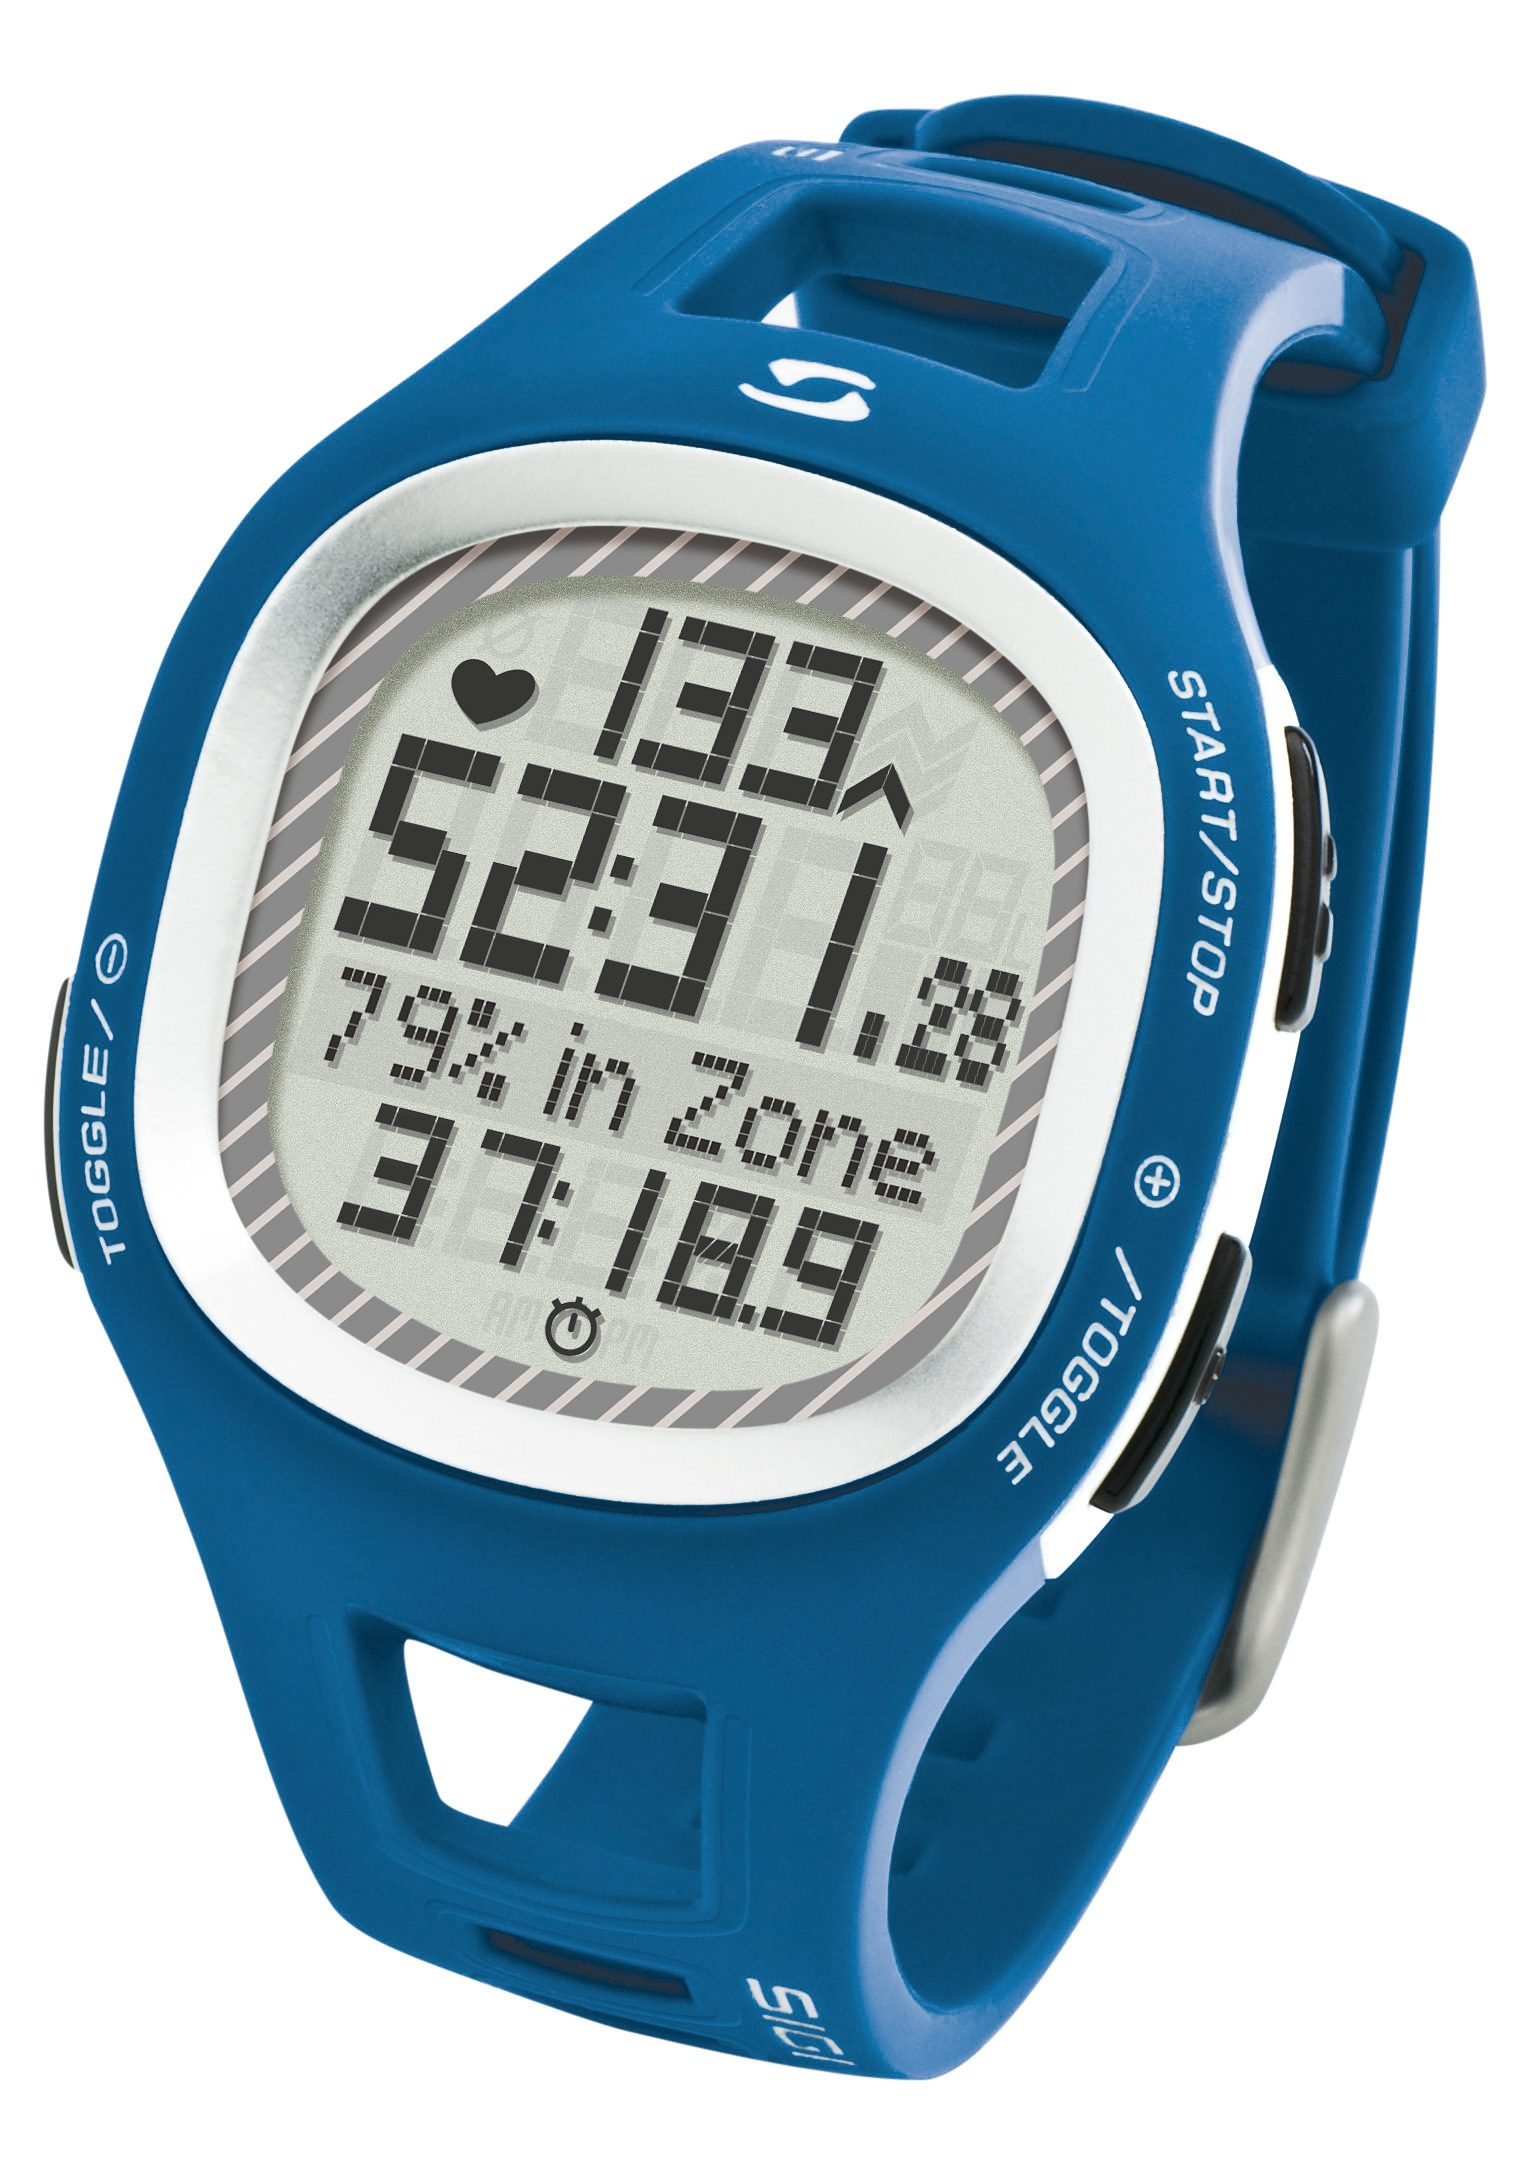 Sigma Sport Pulsuhr inkl. Brustgurt, »PC 10.11 blue«